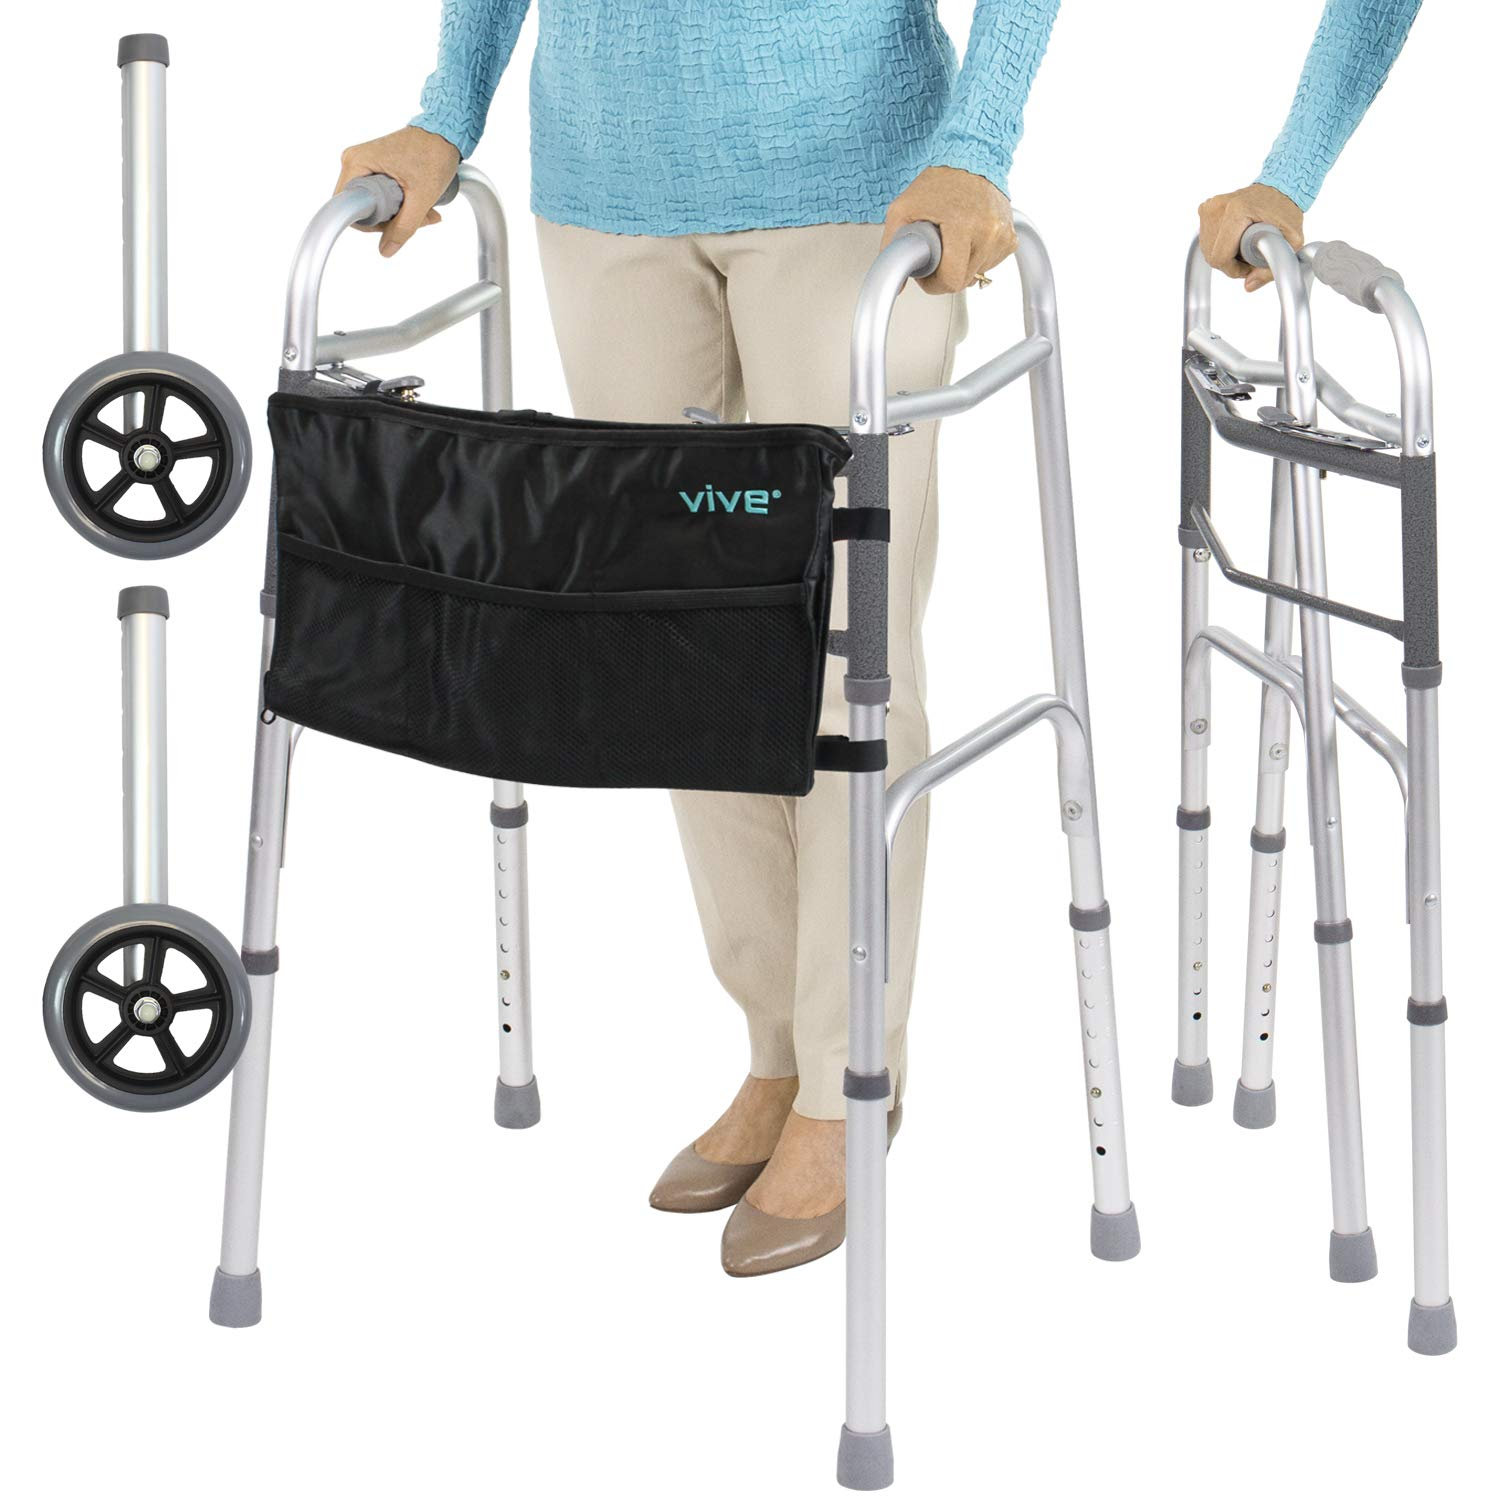 Vive Folding Walker (Plus Bag and 2 Wheels) - Front Wheeled Support, Narrow 23 Inch Wide - Adjustable, Lightweight Portable, Compact Elderly, Handicap Medical Walking Mobility Aid - Push Button Close by Vive